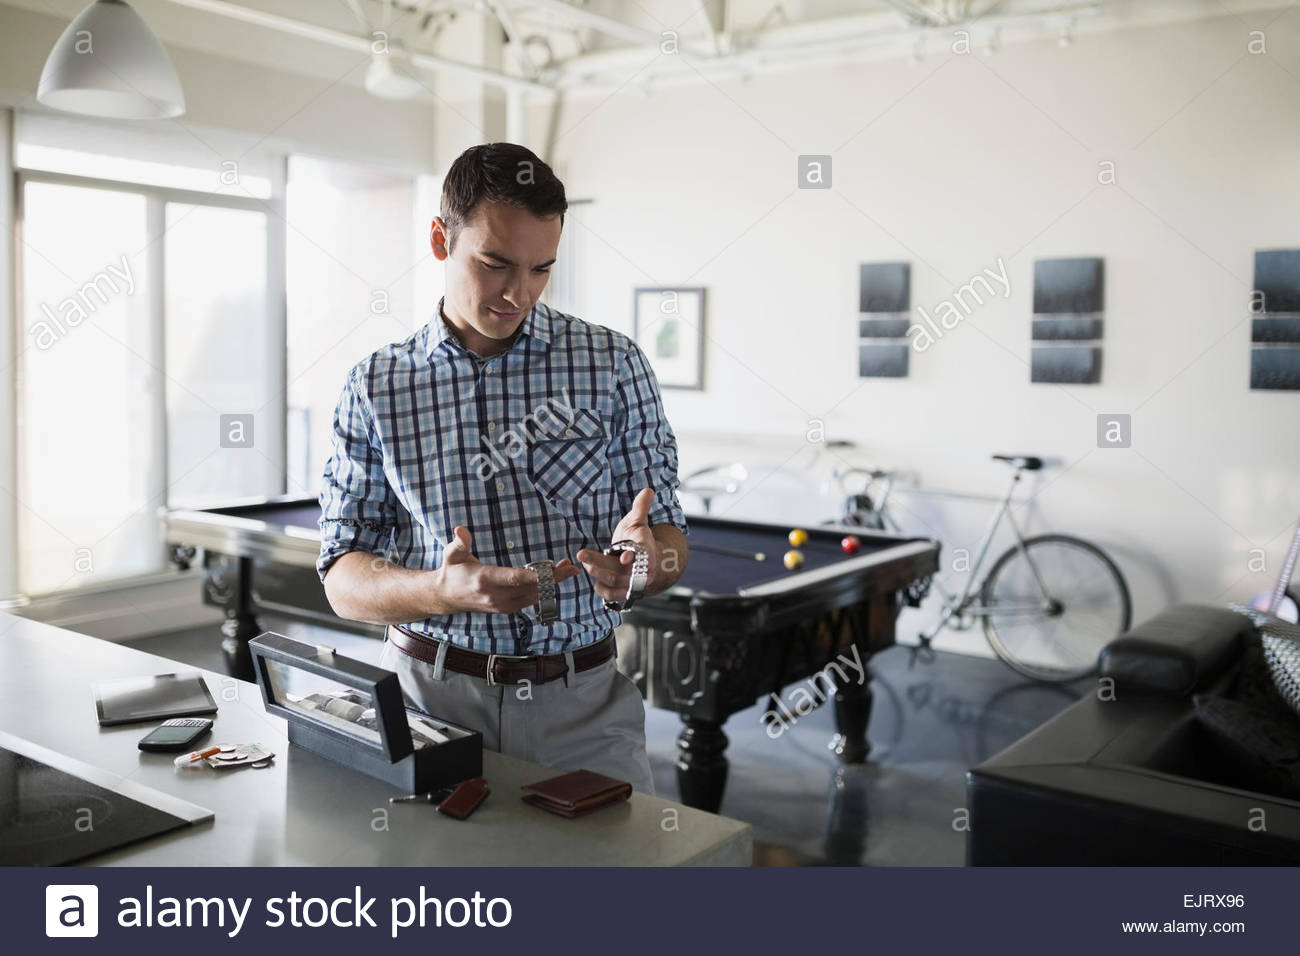 Man comparing wristwatches - Stock Image